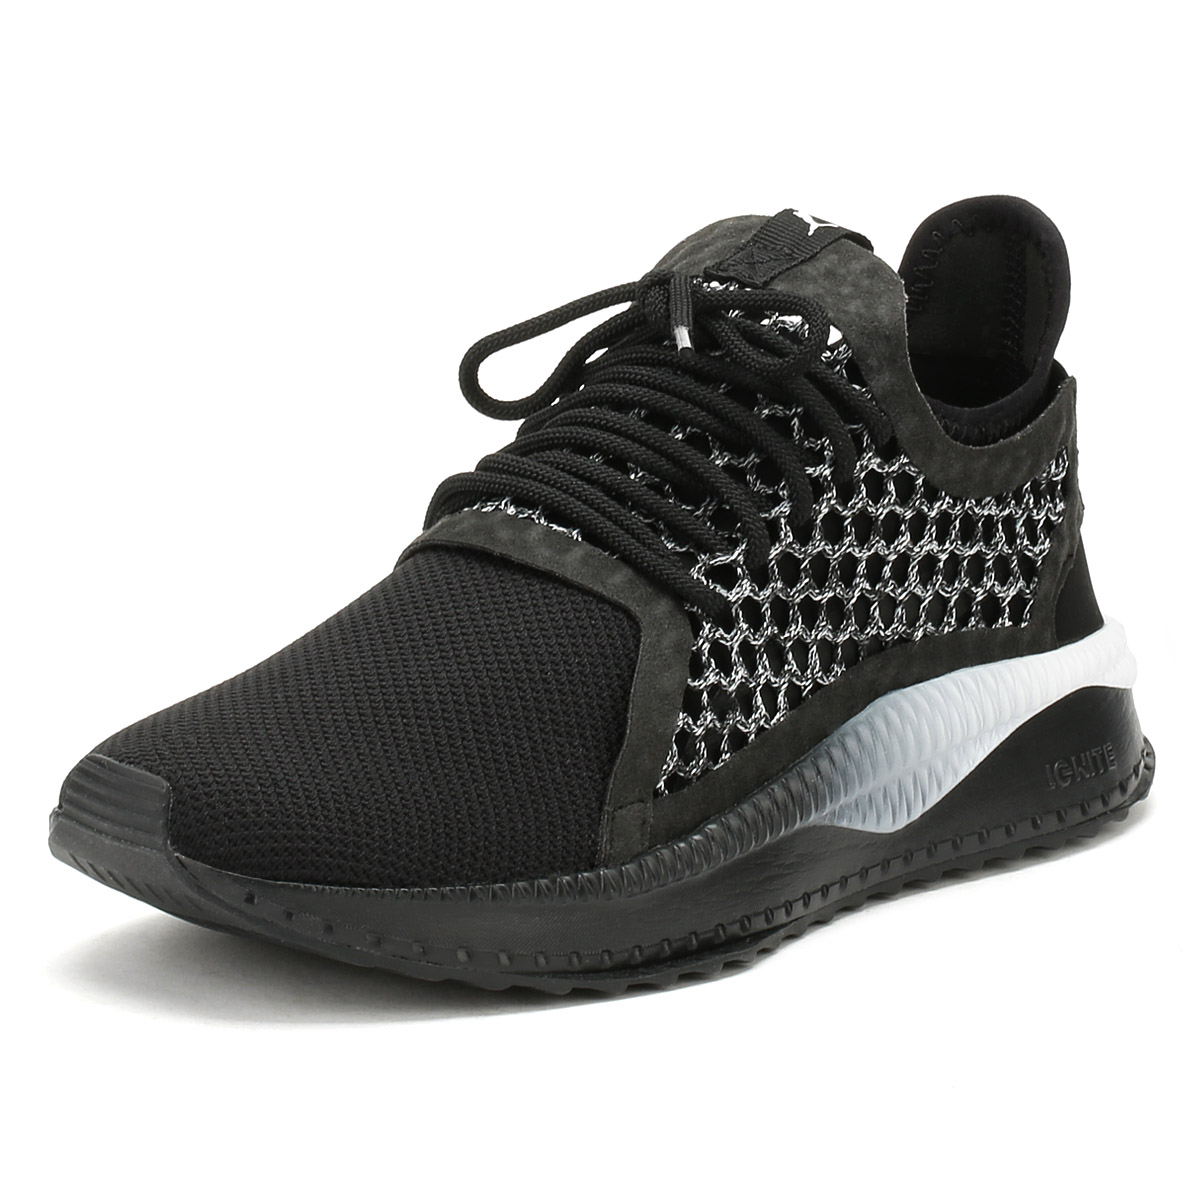 b74ee7ce34bf Details about PUMA Mens Trainers Black   White Tsugi Netfit v2 Lace Up  Sport Running Shoes